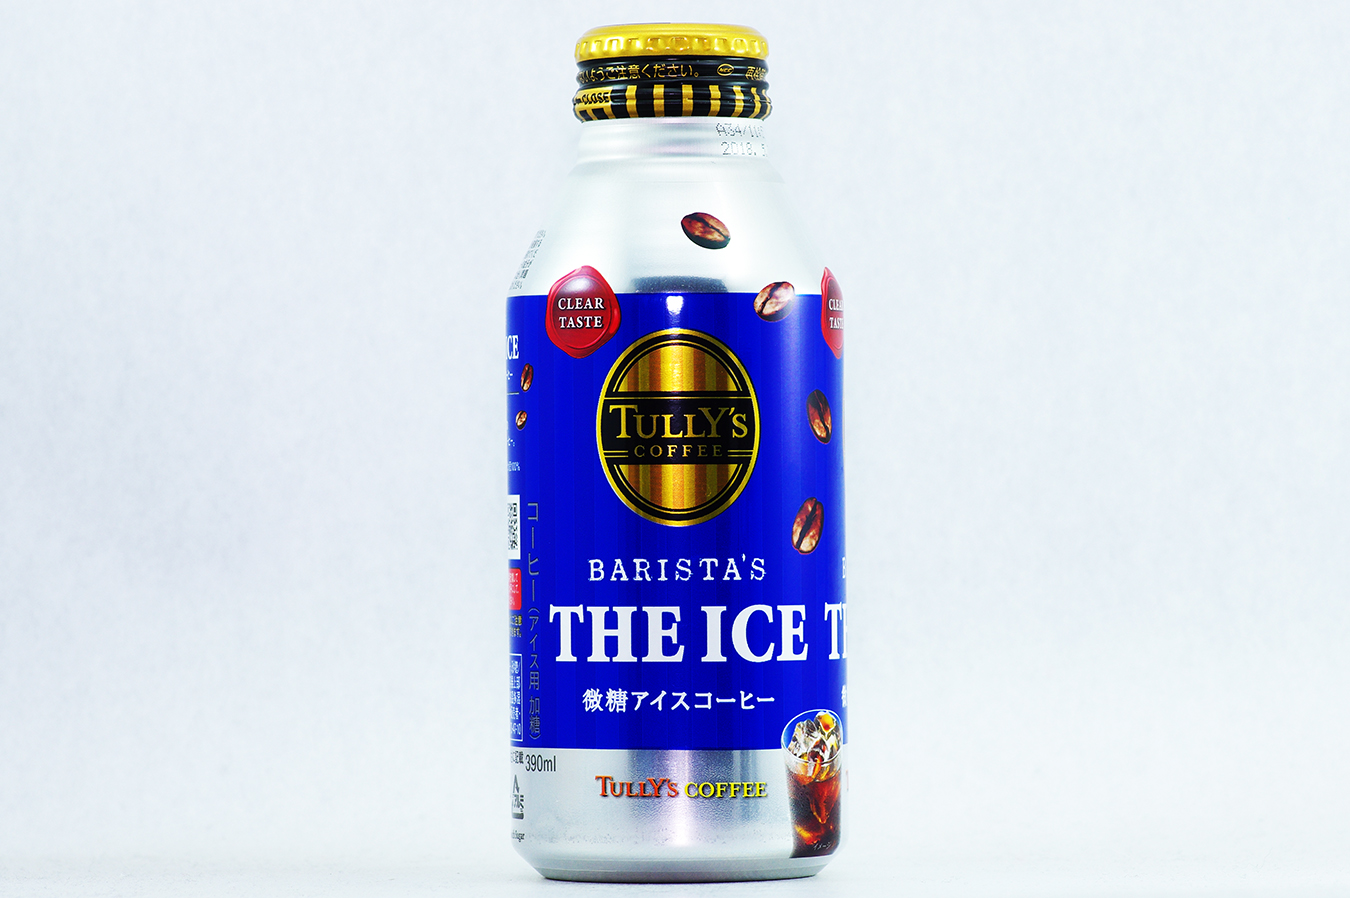 TULLY'S COFFEE BARISTA'S THE ICE 390mlボトル缶 2017年7月